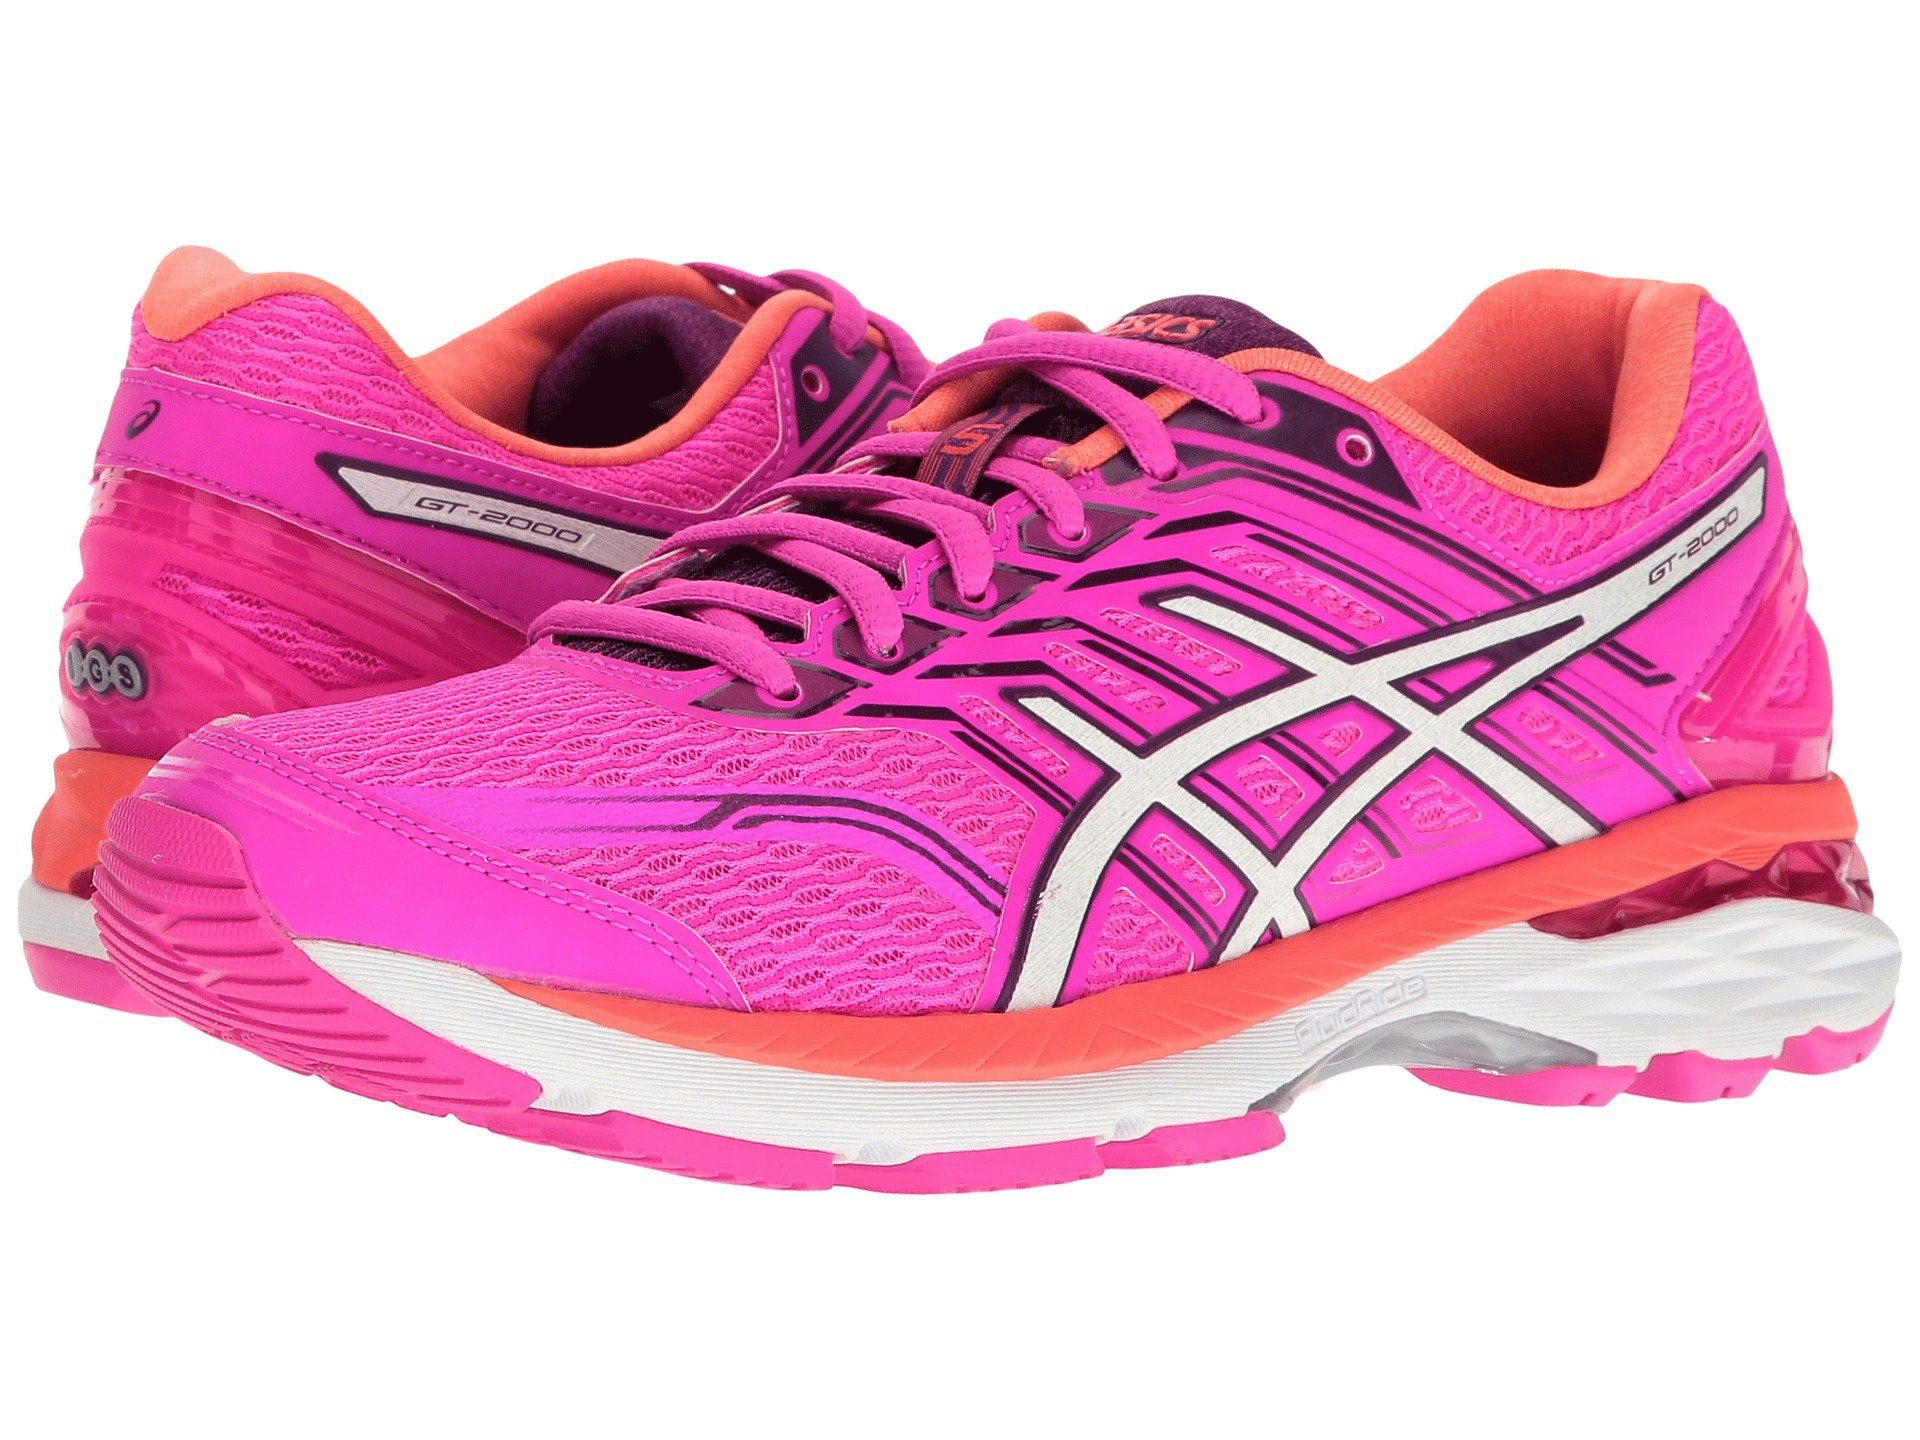 Gt2000 5 in pink glowwhitepurple with images asics